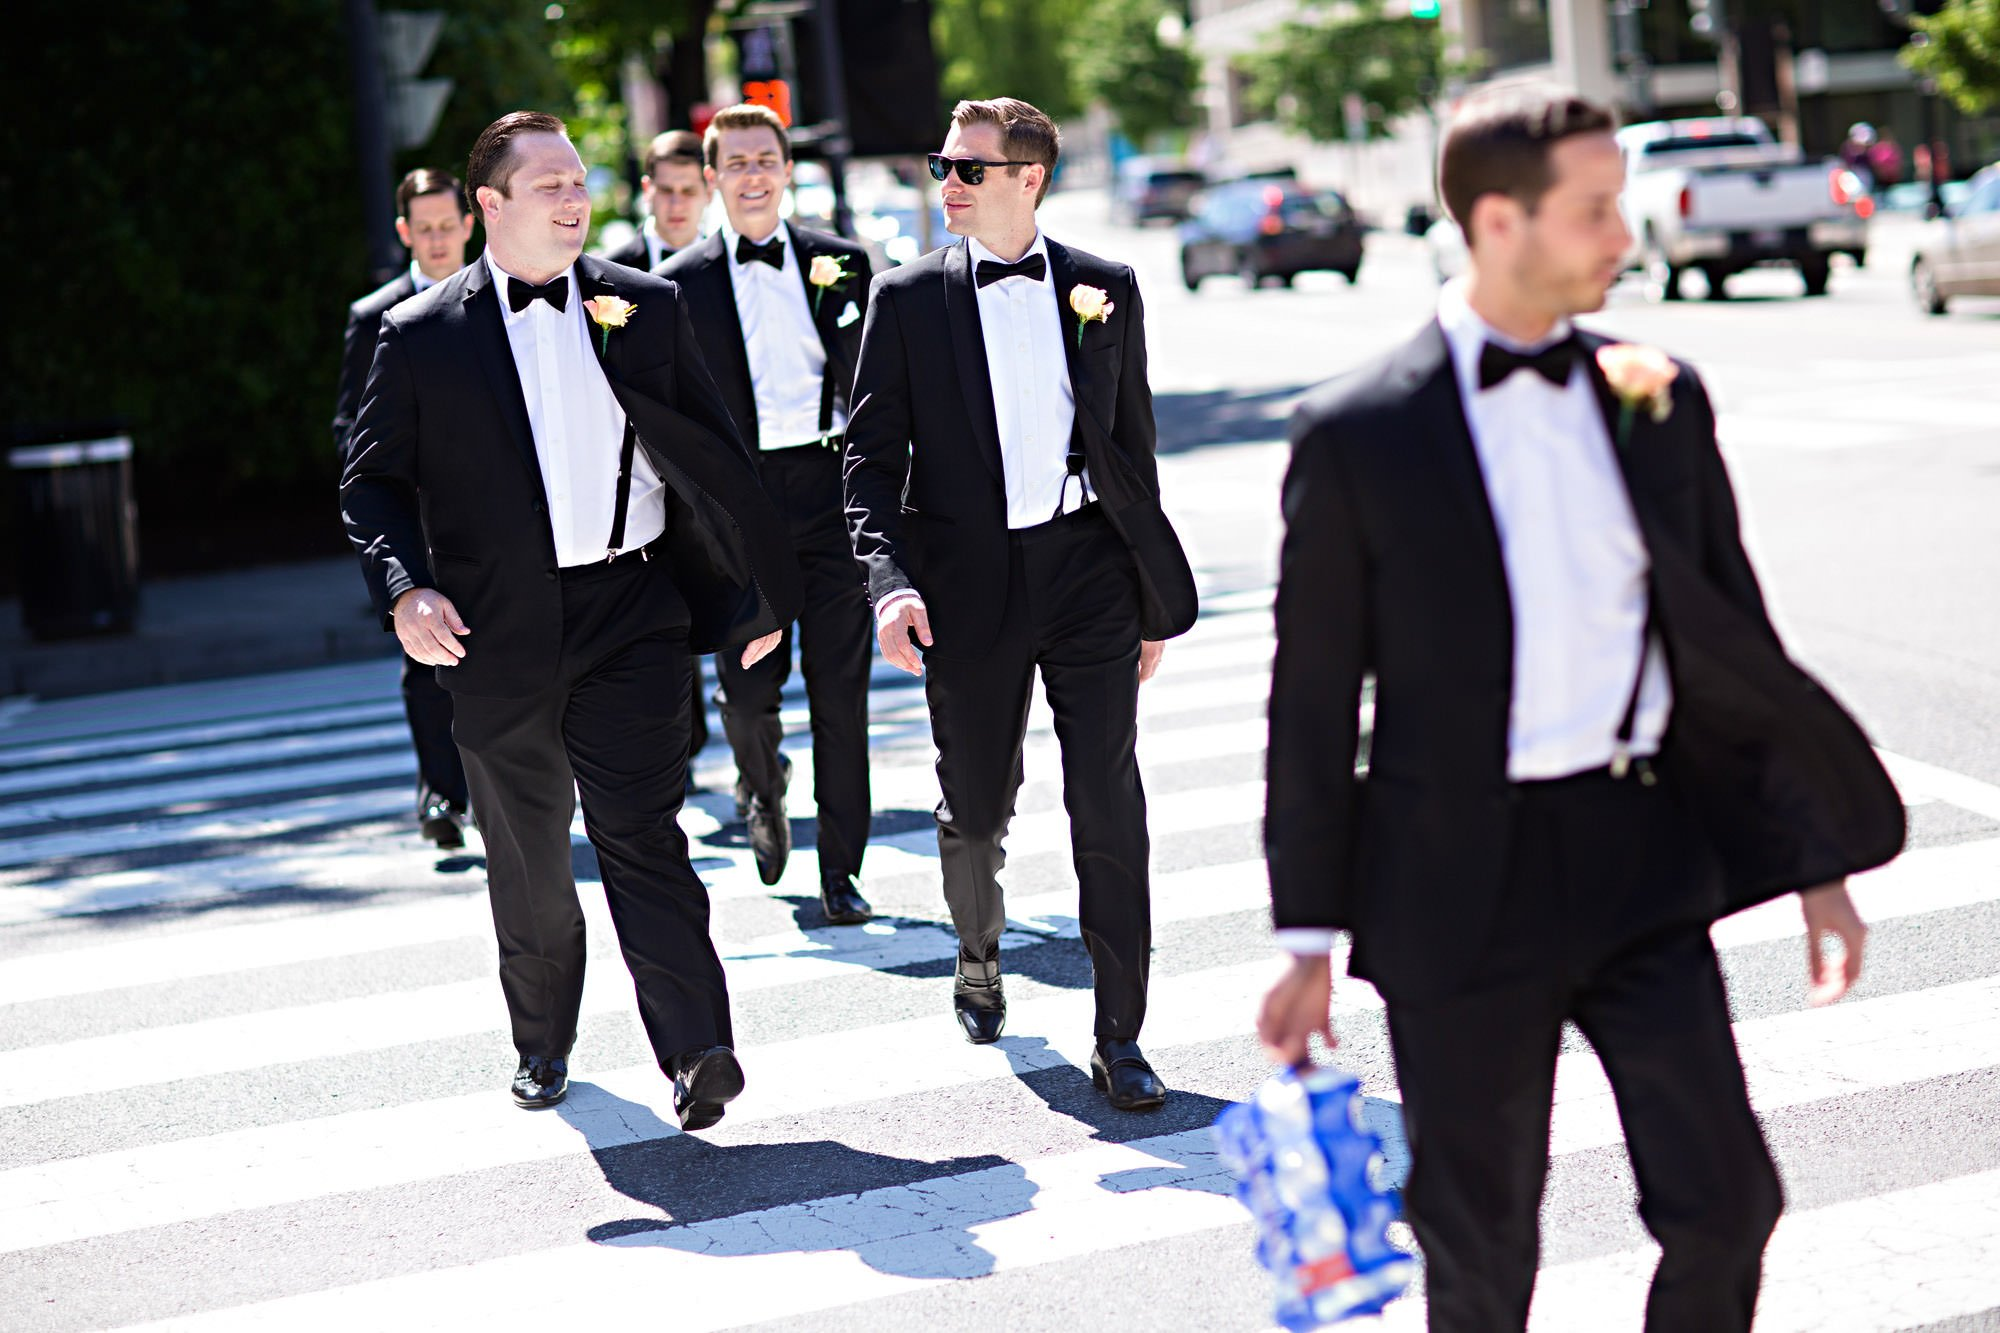 The groomsmen walk through a crosswalk in Washington, DC prior to the wedding ceremony.